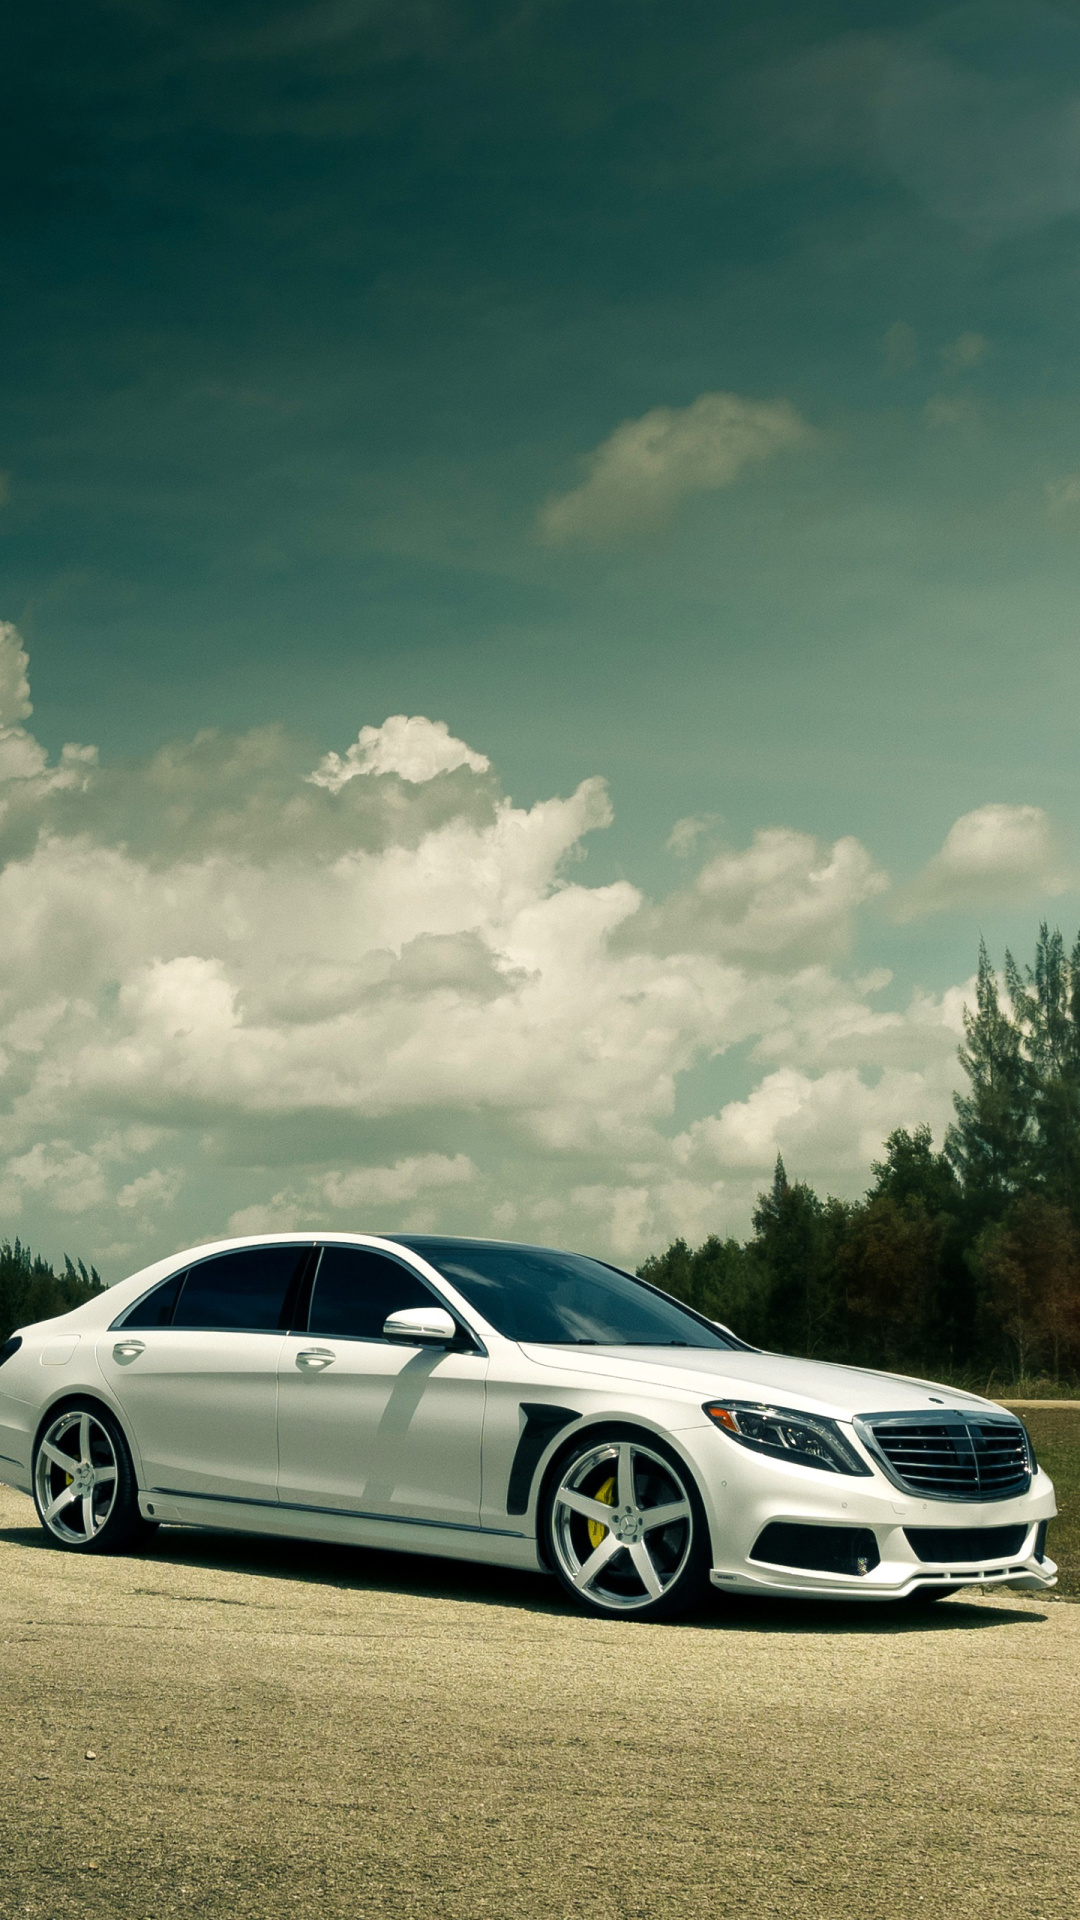 Mercedes- Benz S550 Tuned Brabus Wallpaper for iPhone 6 Plus